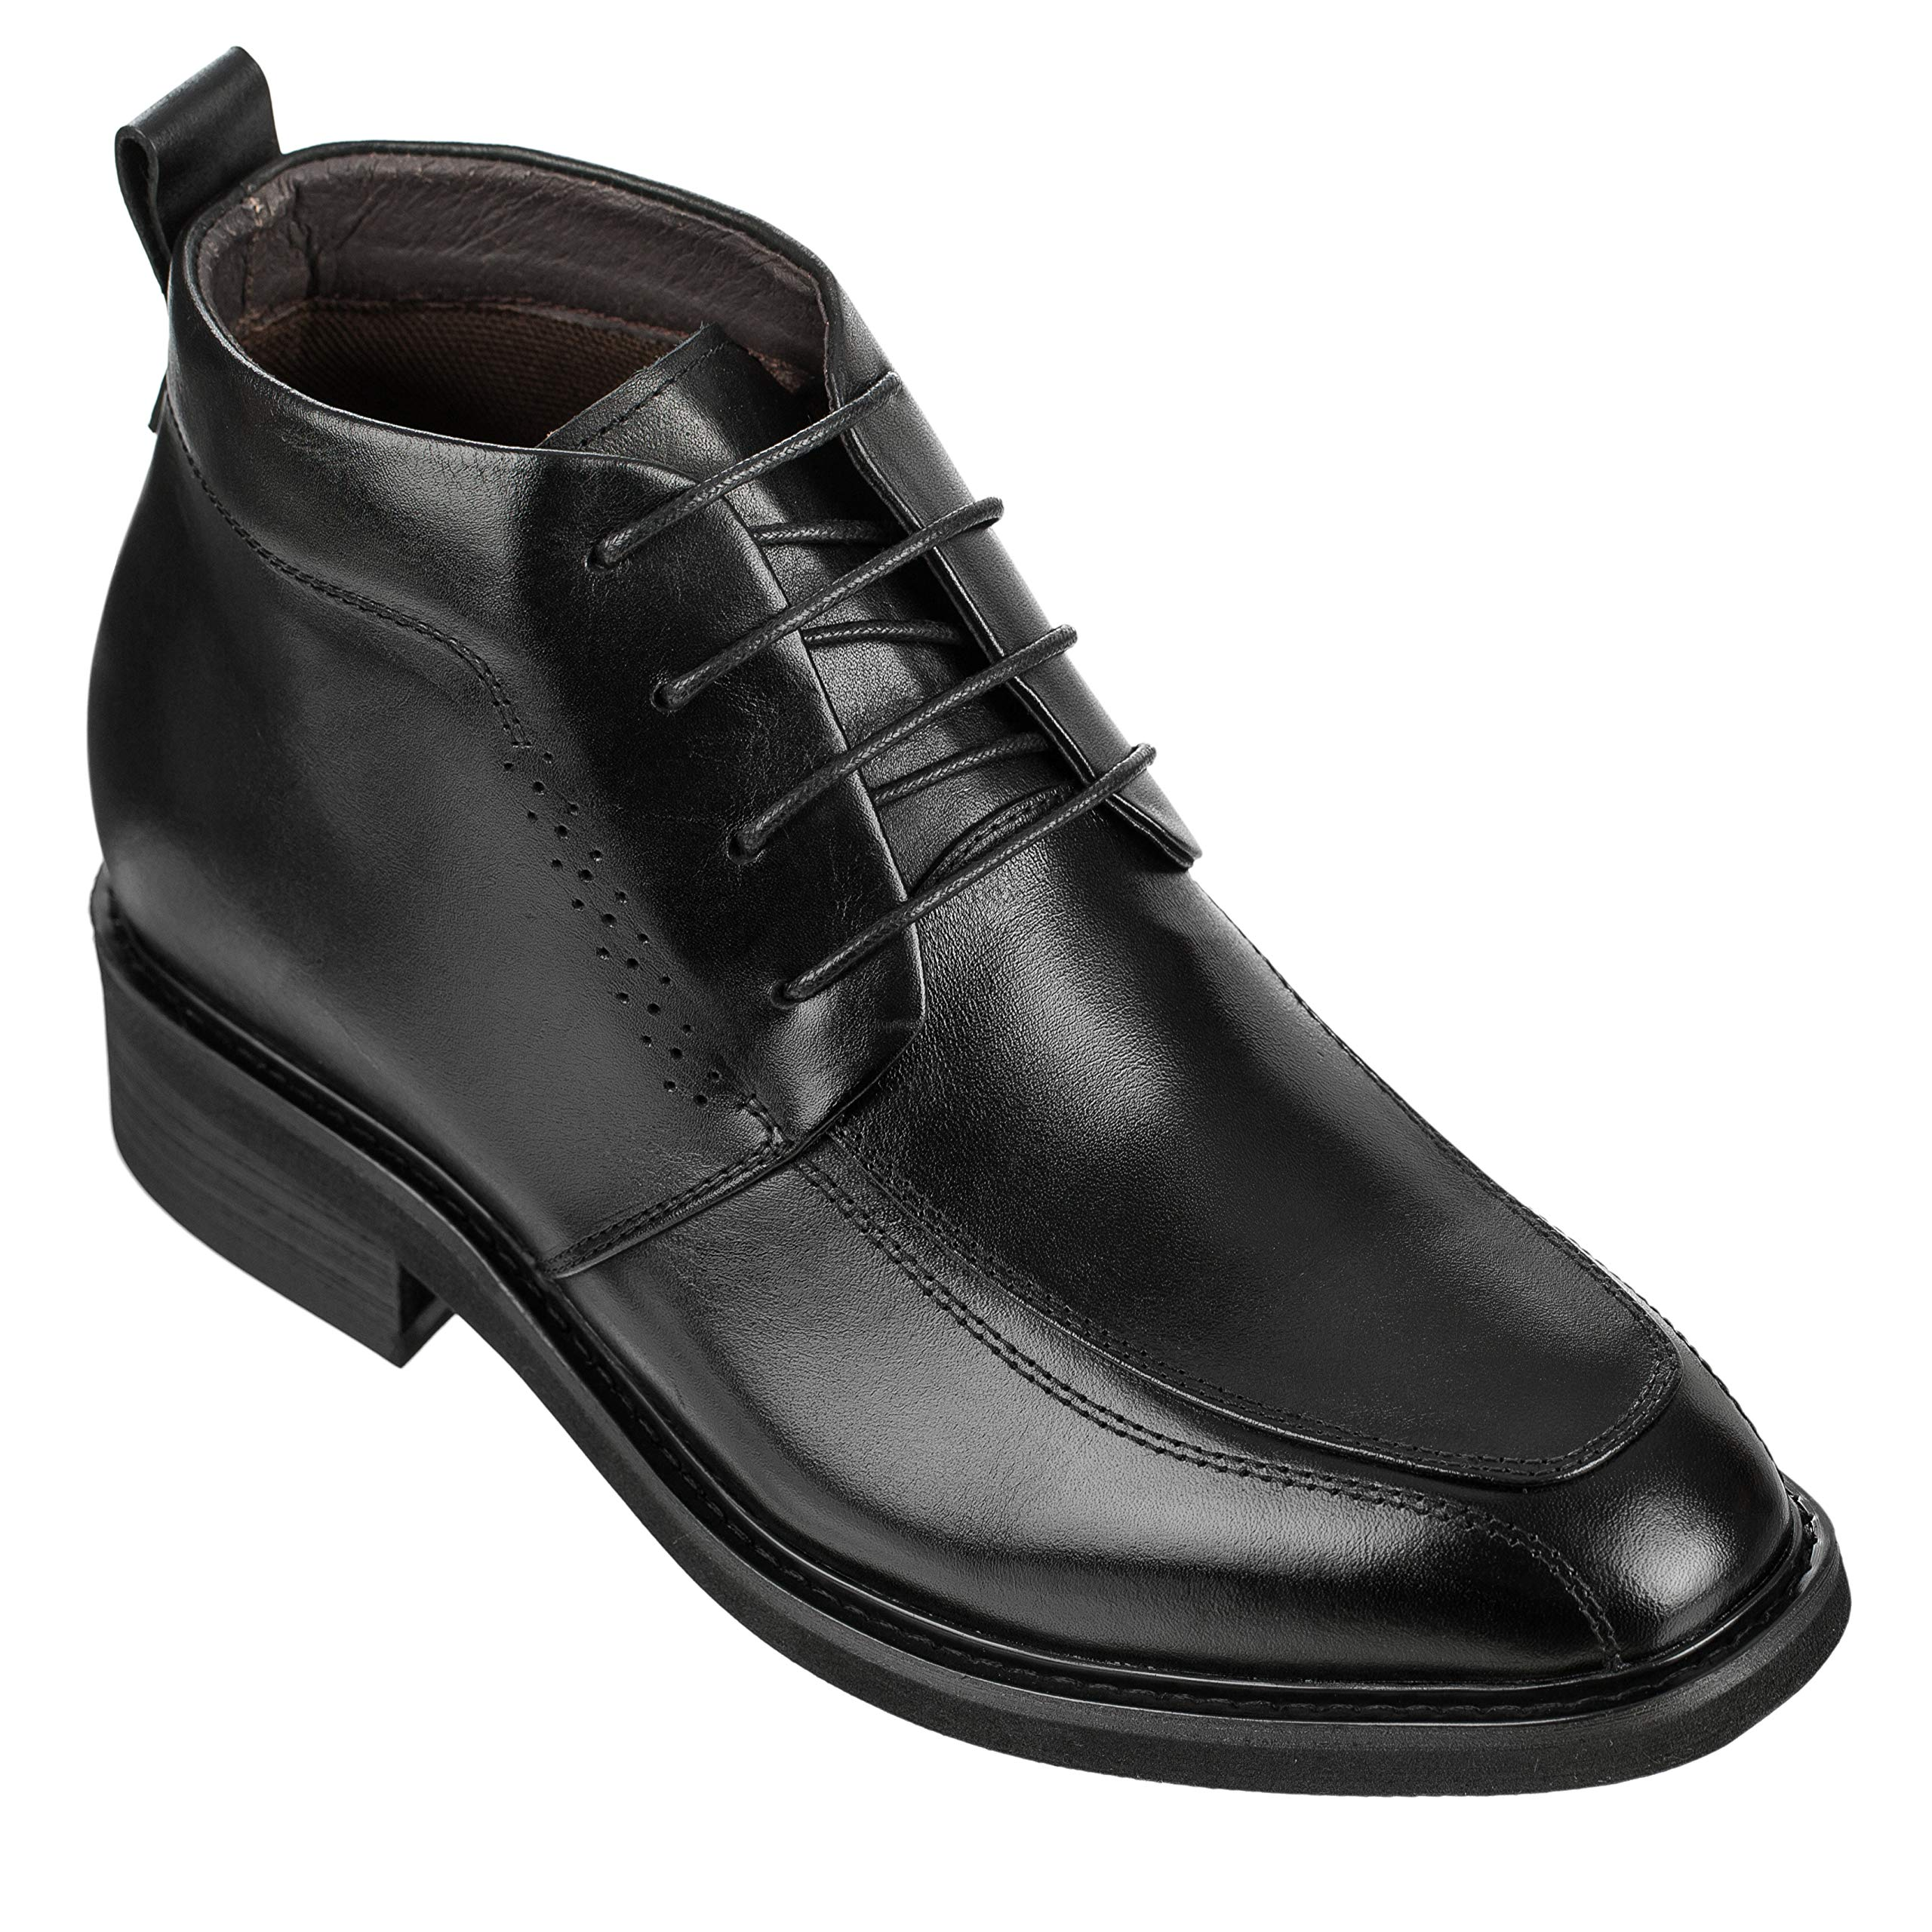 Calden Men's Invisible Height Increasing Elevator Shoes - Black Leather Lace-up Dress Formal Ankle Boots - K28801-3 Inches Taller (11 D(M) US) by Calden